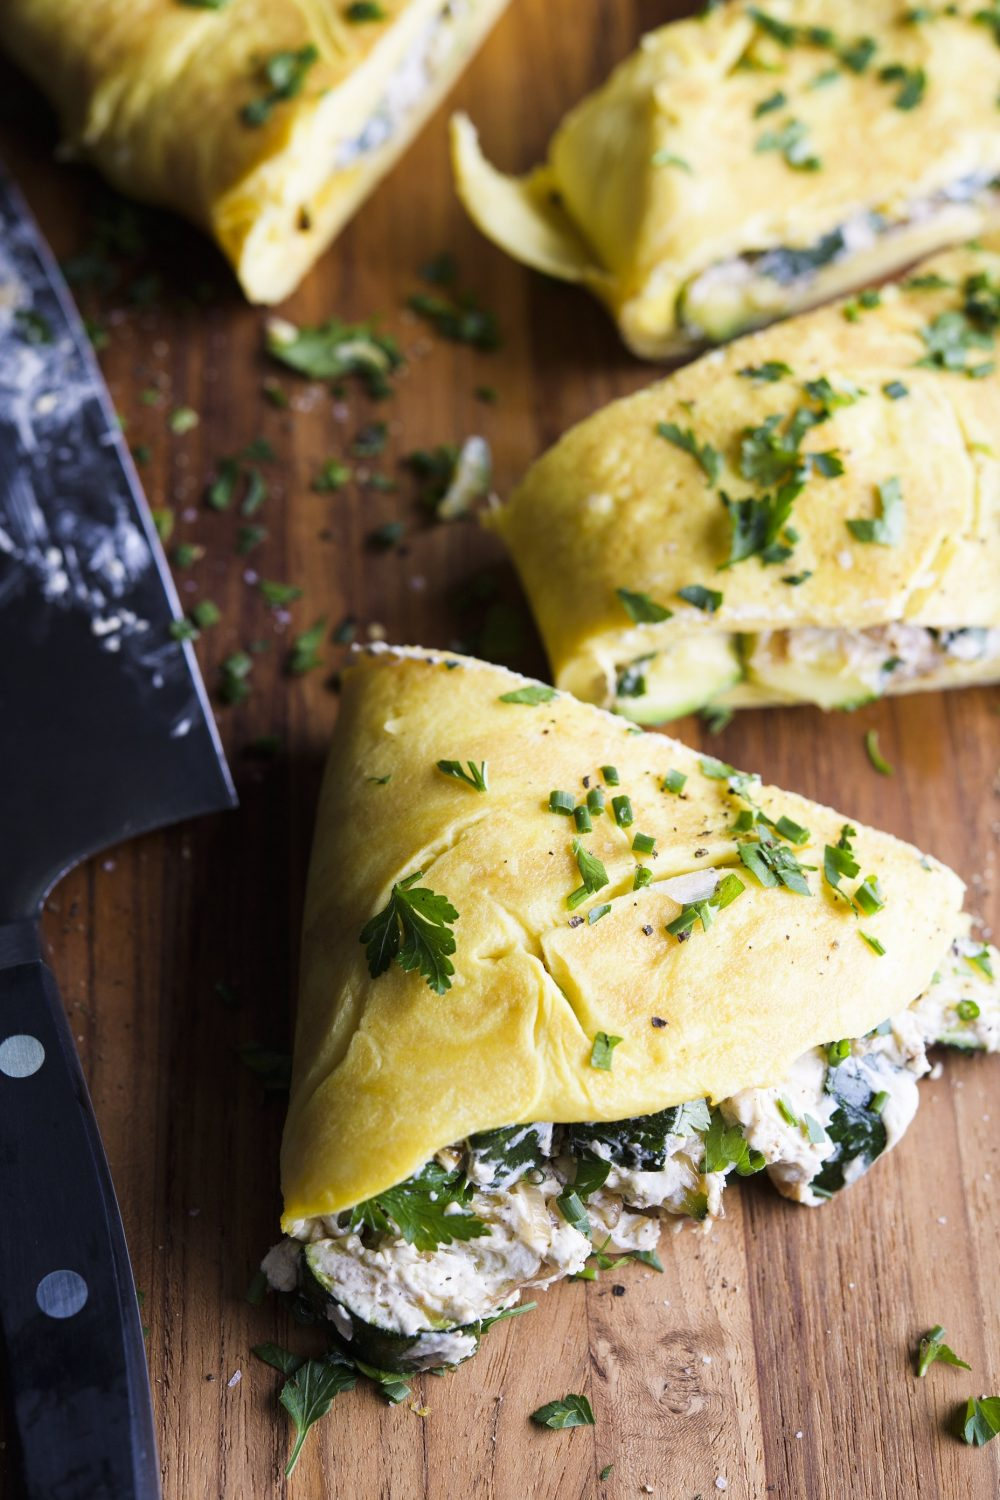 zucchini-goat-cheese-omelet